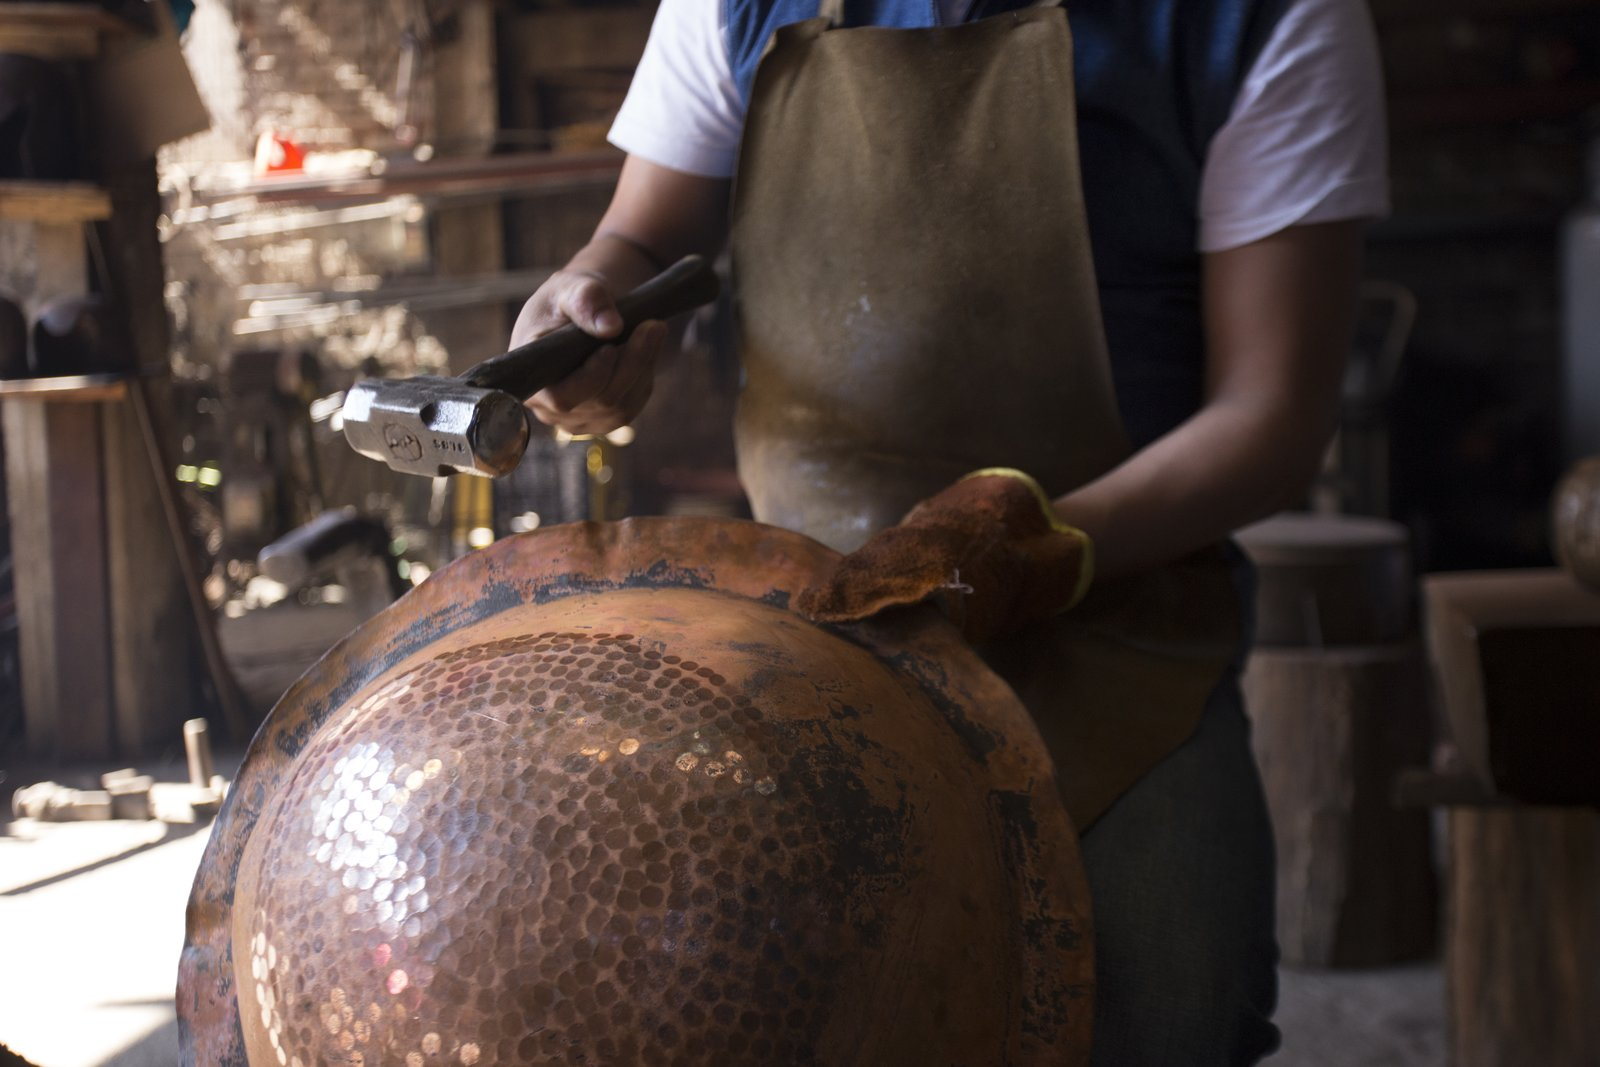 One of the traditional techniques that Filamento is fostering is working with hammered copper in Santa Clara del Cobre. For years, this skill has supported the principal commercial activity of this town, and includes knowledge that's been passed down for generations. To create these pieces, eight or  more craftsmen work together at the same time around an anvil. The copper is literally pounded when it's a state that's hot enough to be formed a certain way.